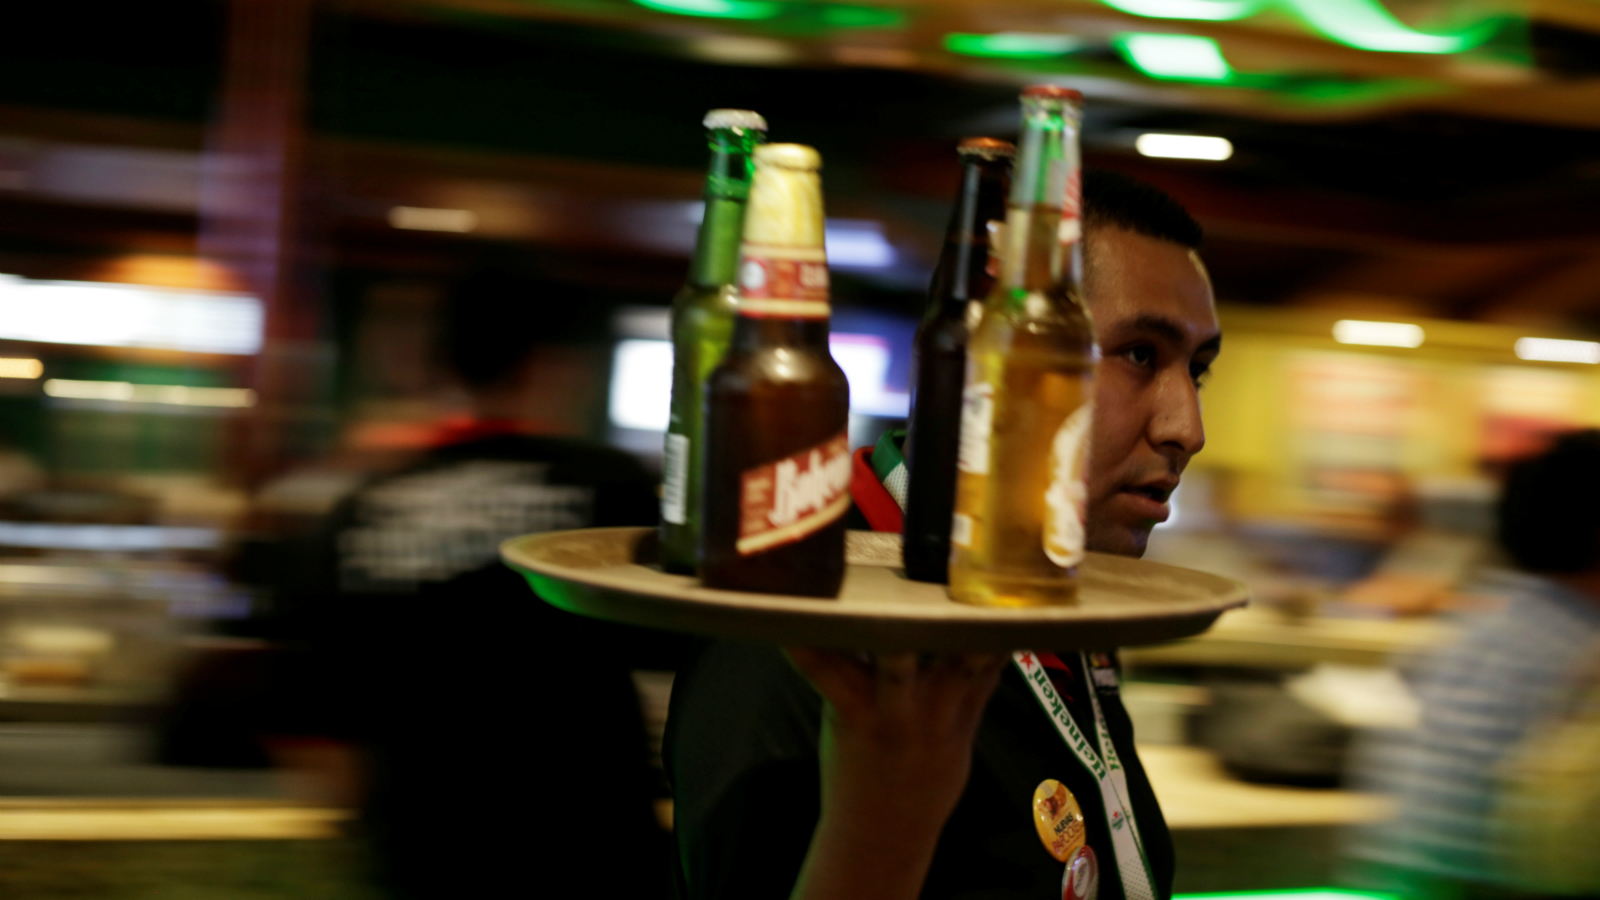 A waiter carries a tray with bottles of beer at a bar in Ciudad Juarez, Mexico June 20, 2017. Picture taken June 20, 2017.